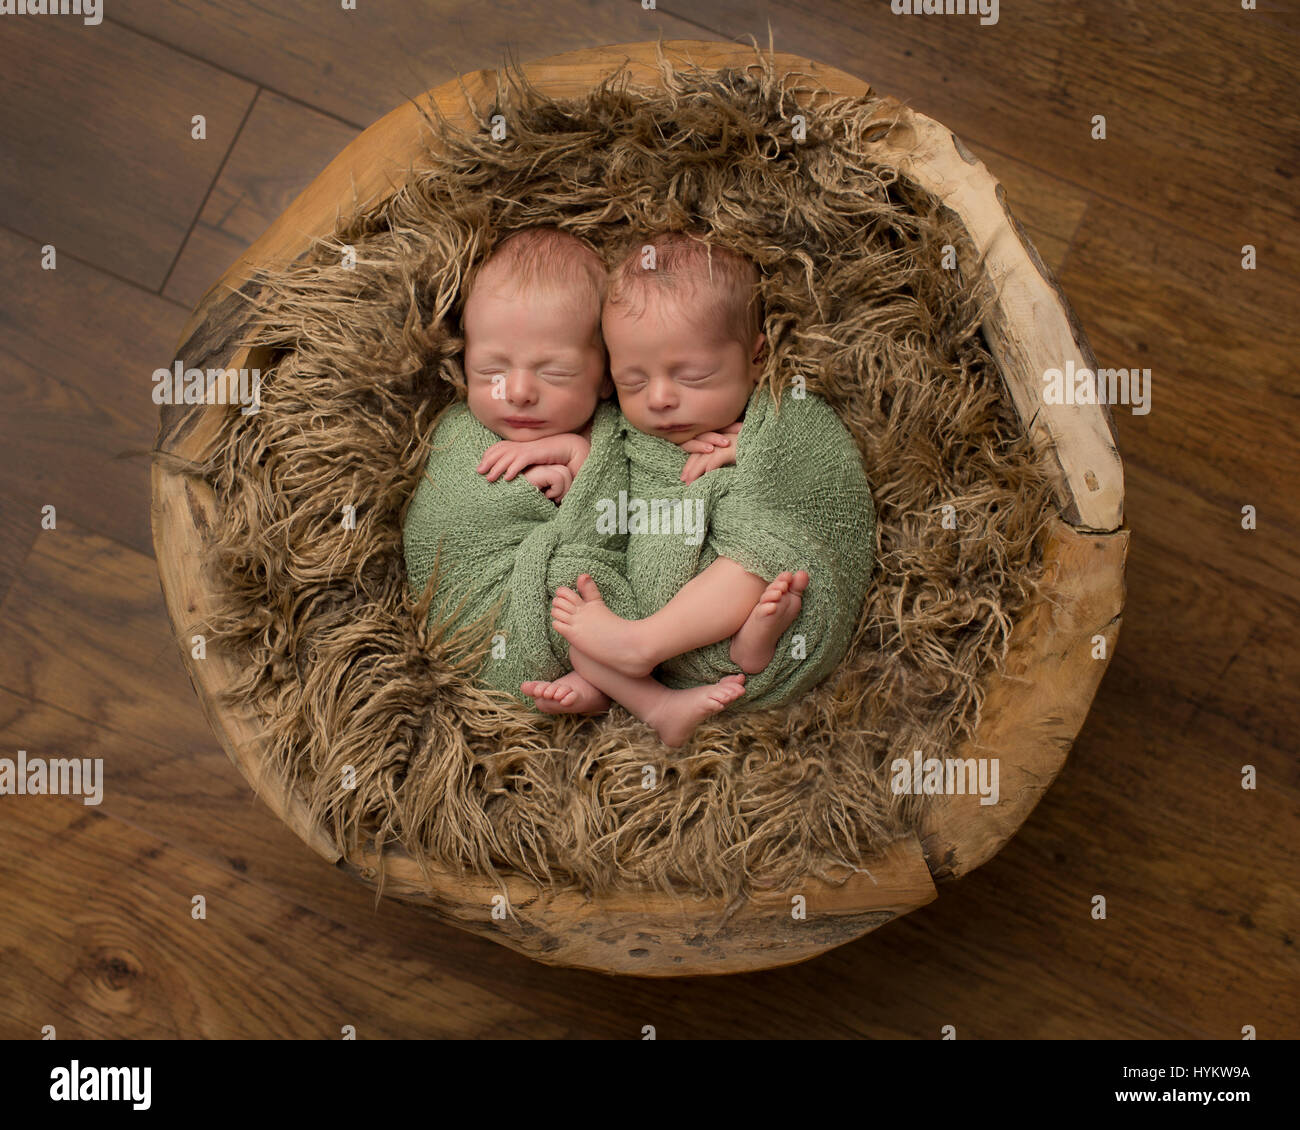 TWIN NEWBORNS makes the cute factor double as shown in these heart-melting shots of the parent SNAP. Pictures show - Stock Image